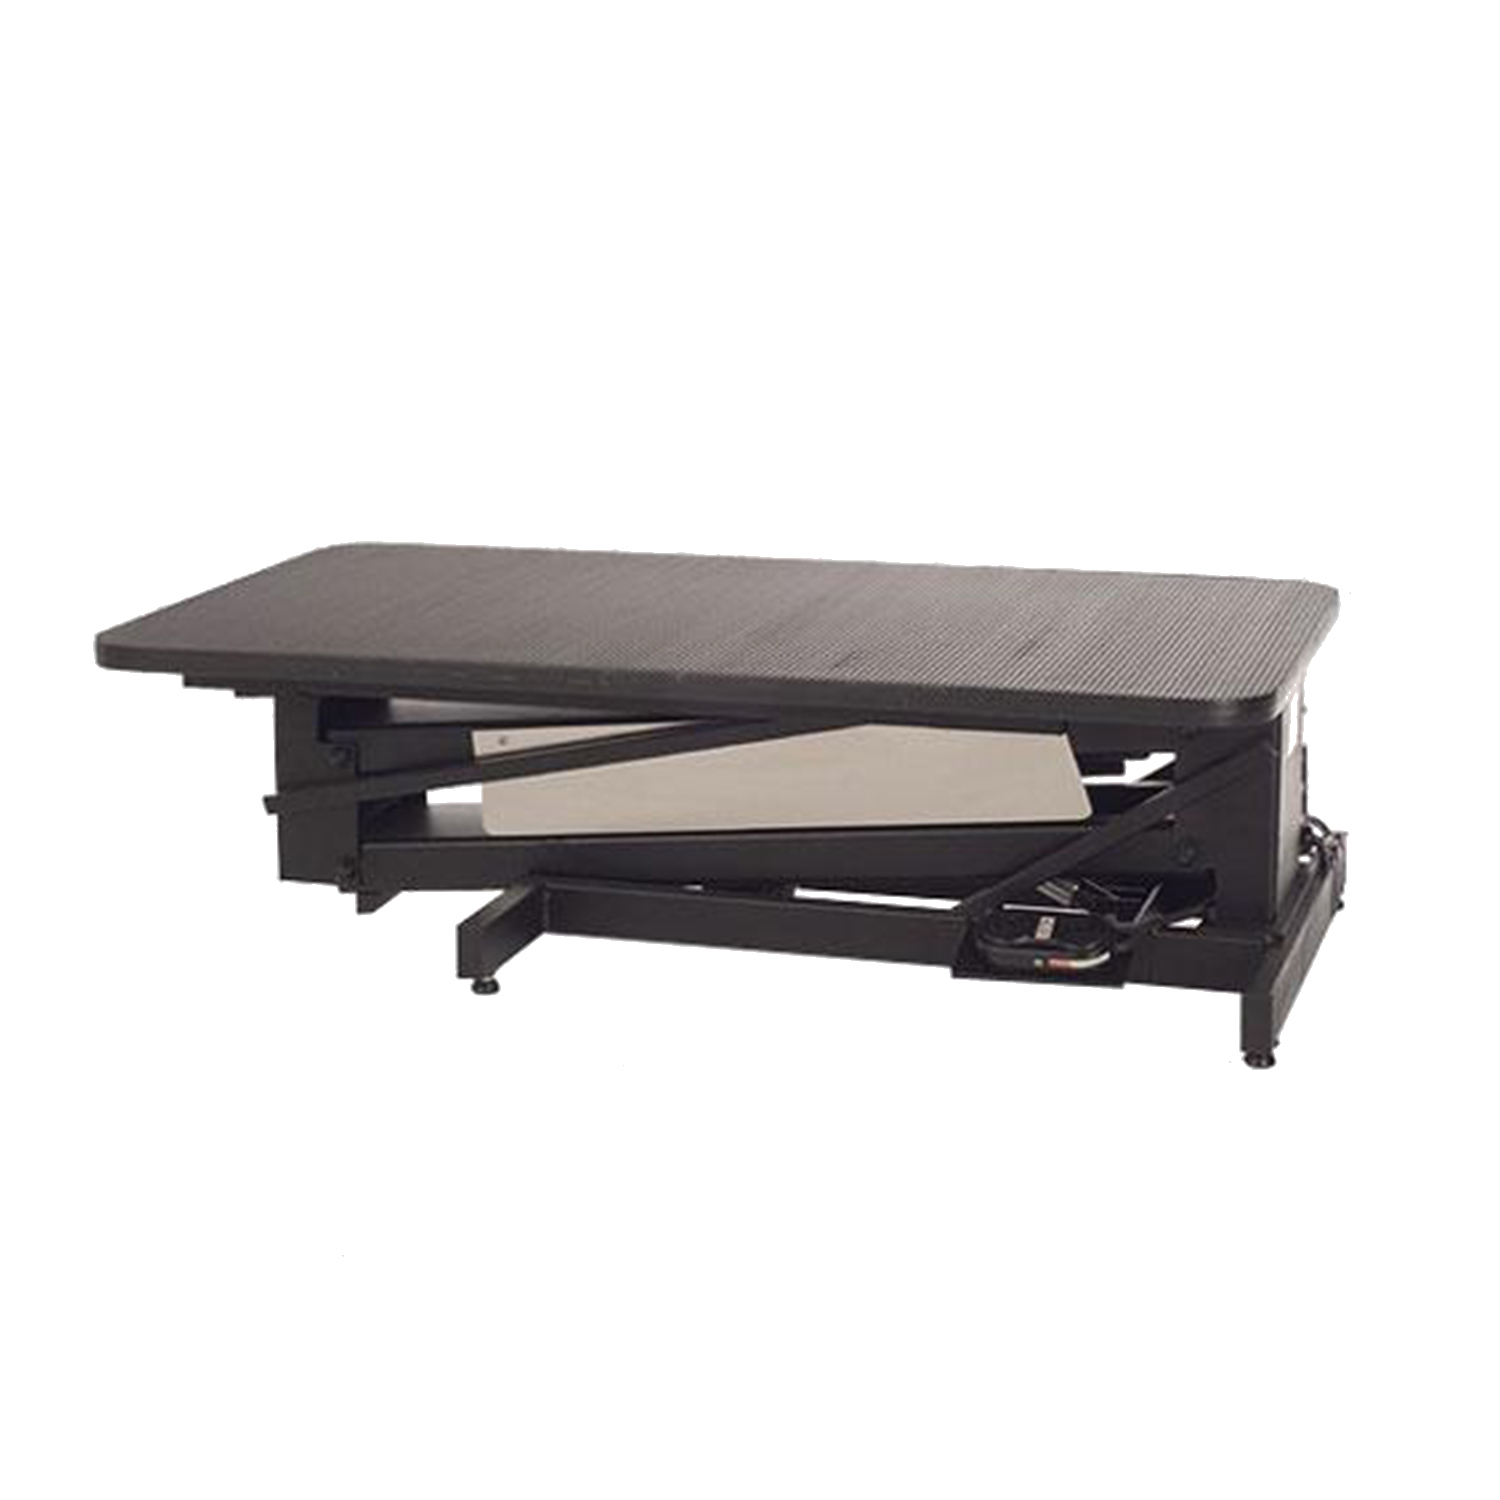 Avante GVT 1500 LowRider: Masterlift Electric Fixed-Top Grooming Table